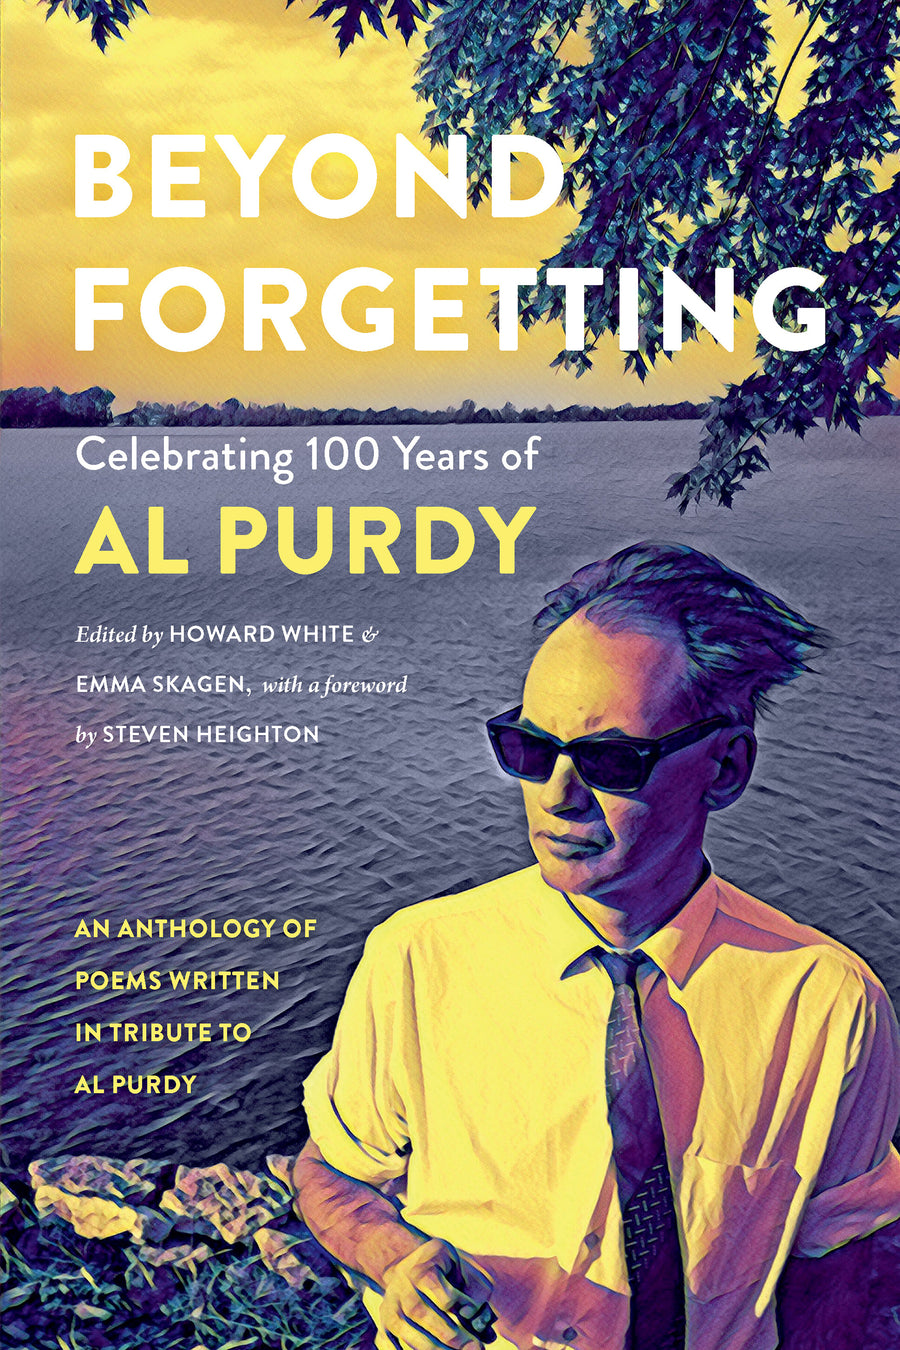 Beyond Forgetting : Celebrating 100 Years of Al Purdy